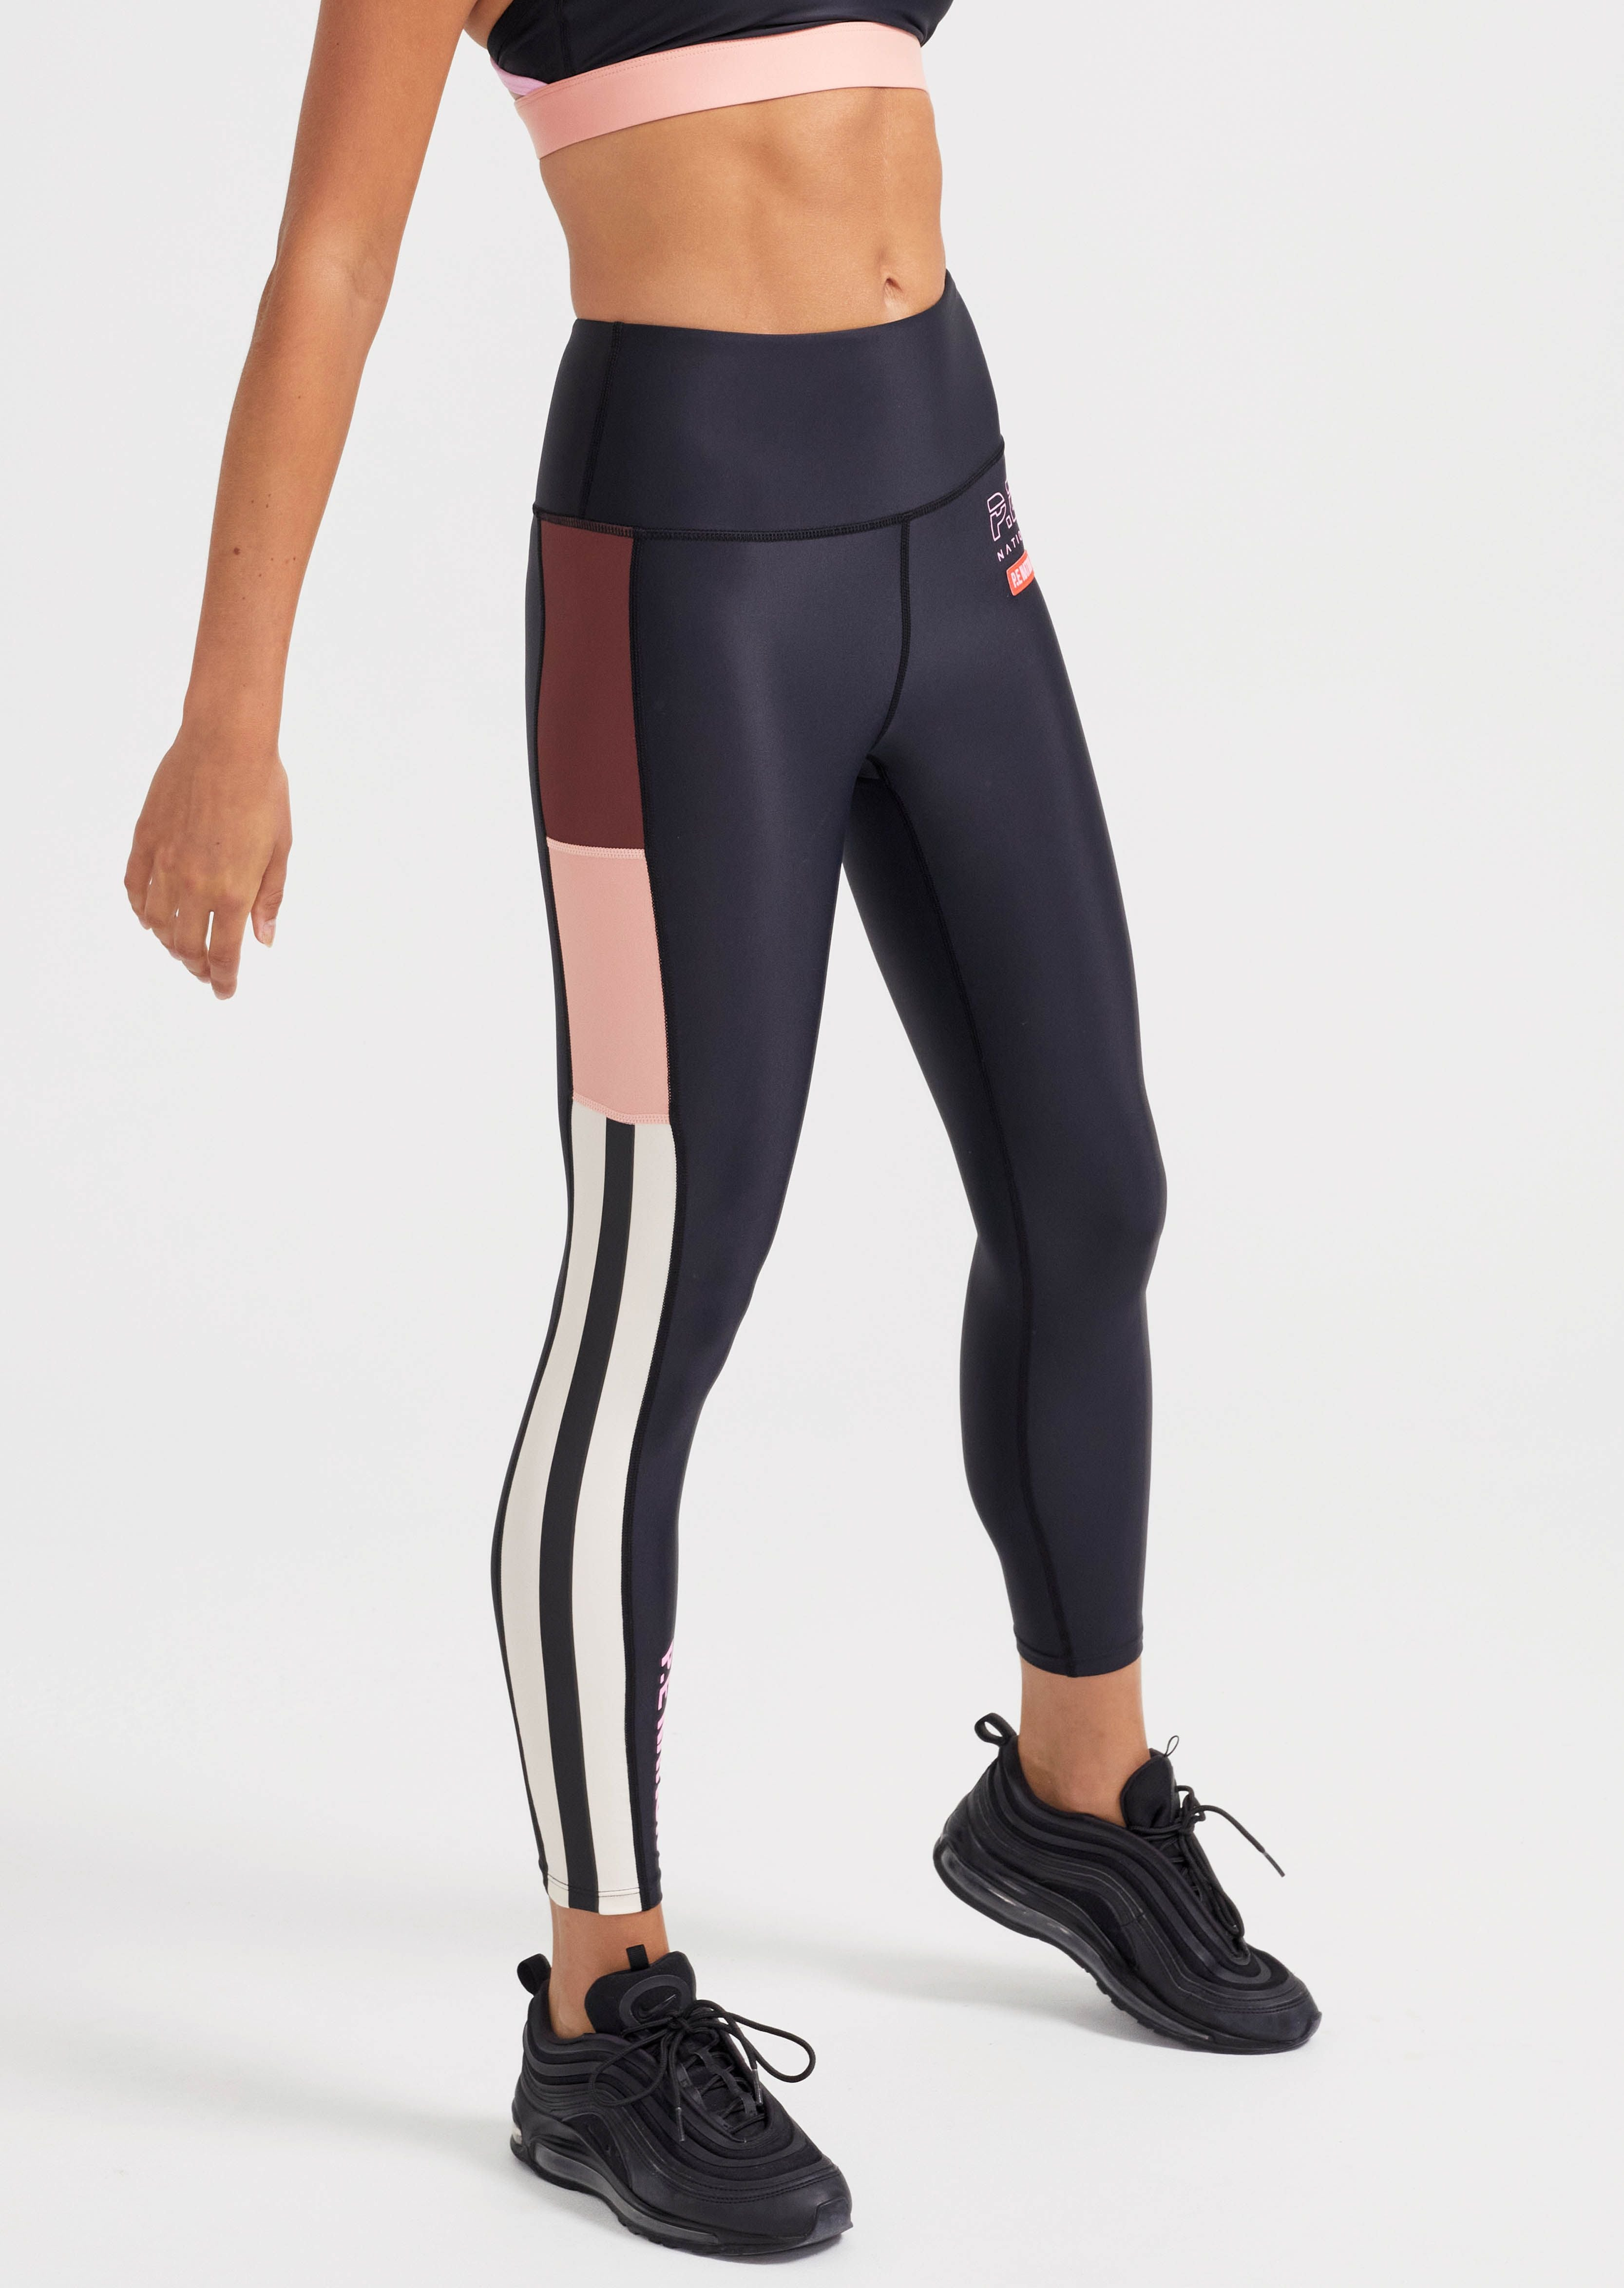 Bar Down Legging